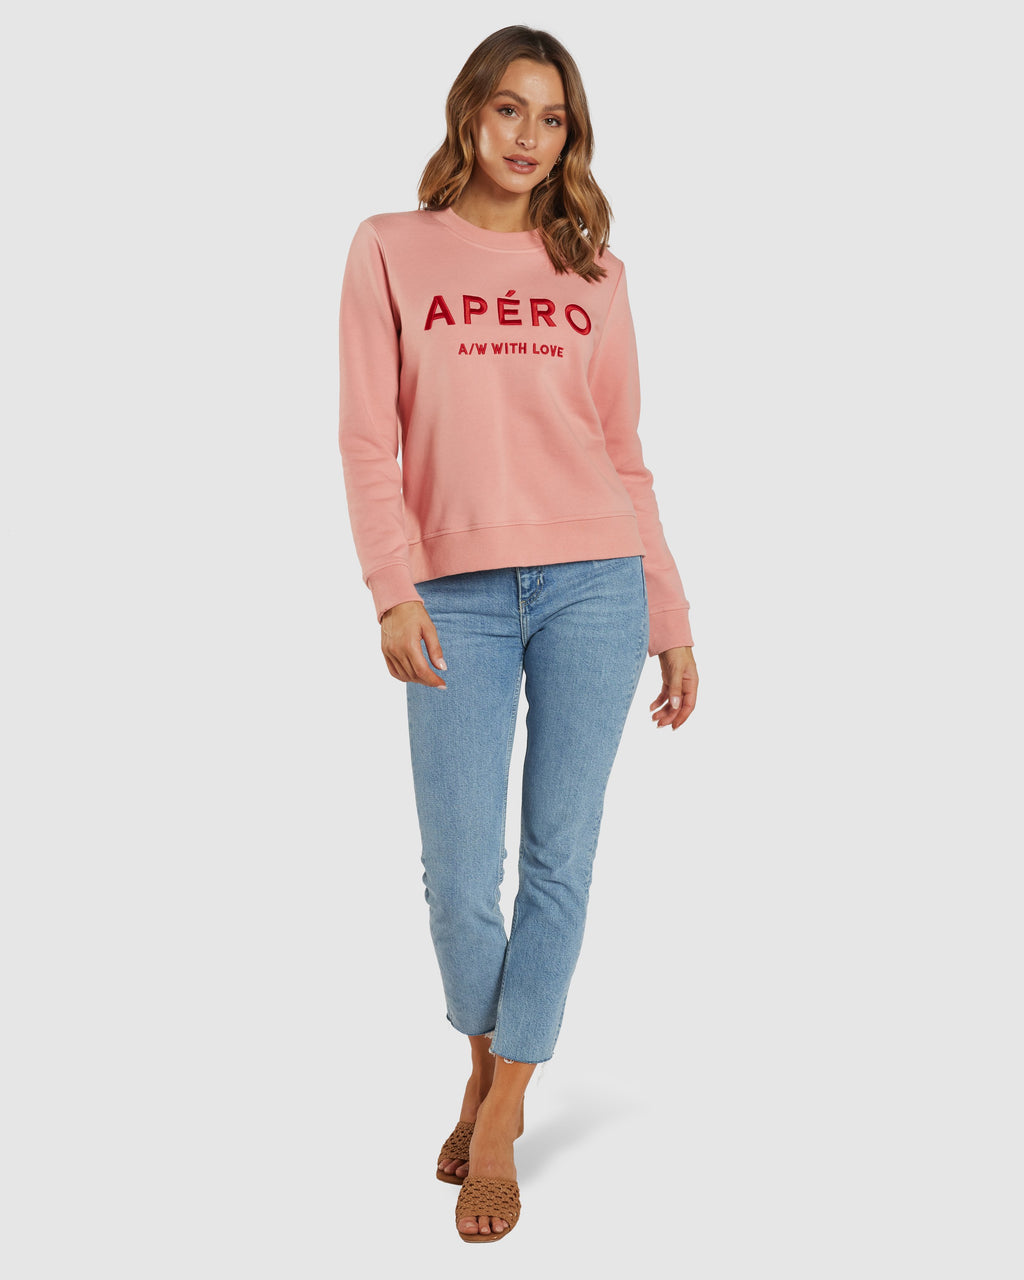 APERO A/W WITH LOVE EMBROIDERED JUMPER - PEACH KISS/RED